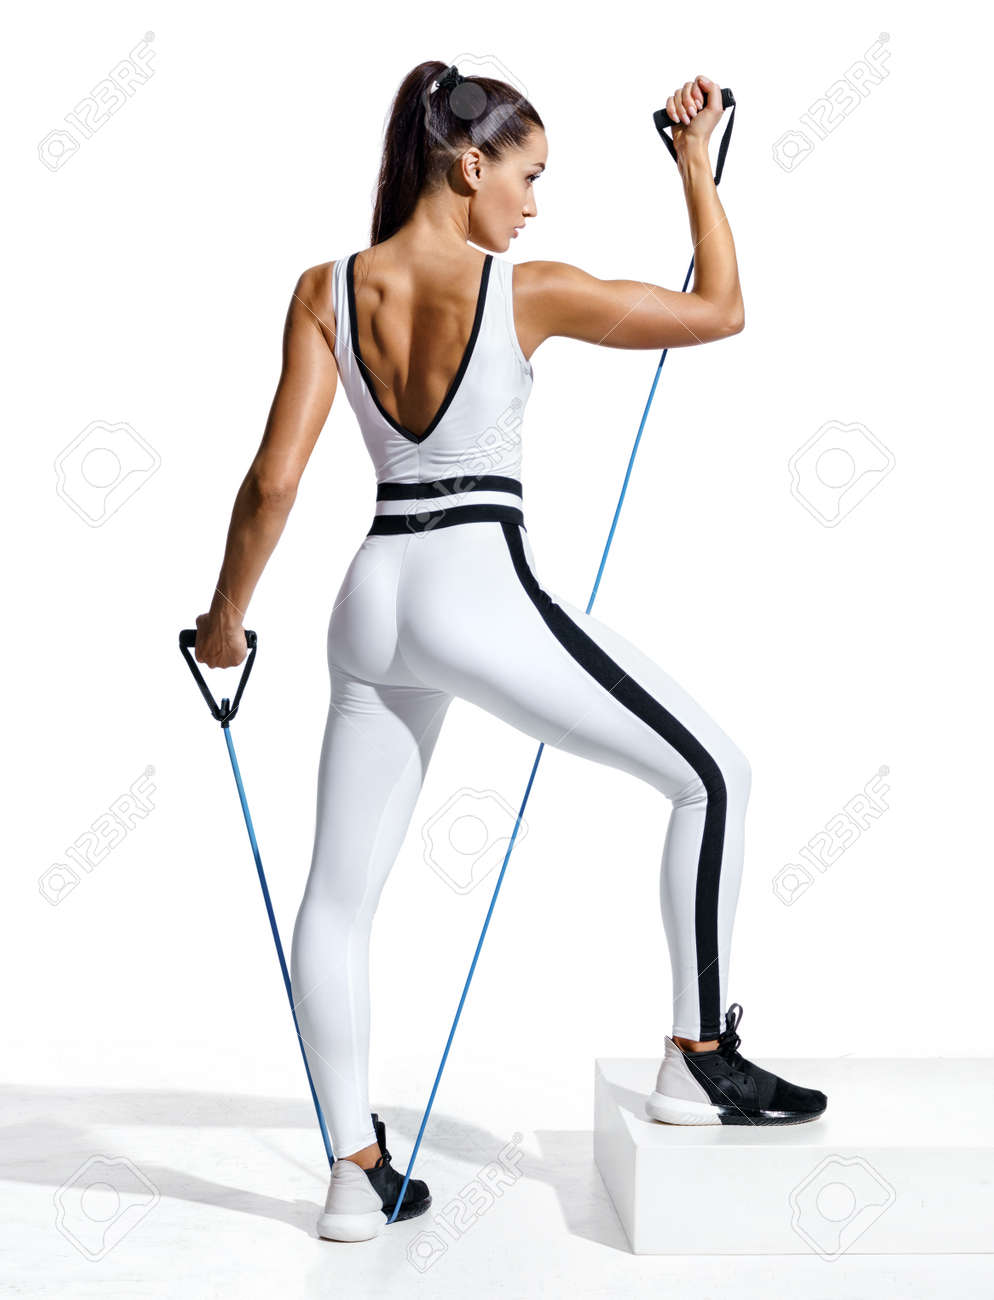 Fitness girl performs exercising with resistance band. Photo of sporty girl in fashionable sportswear isolated on white background. Strength and motivation. Full length - 103368276